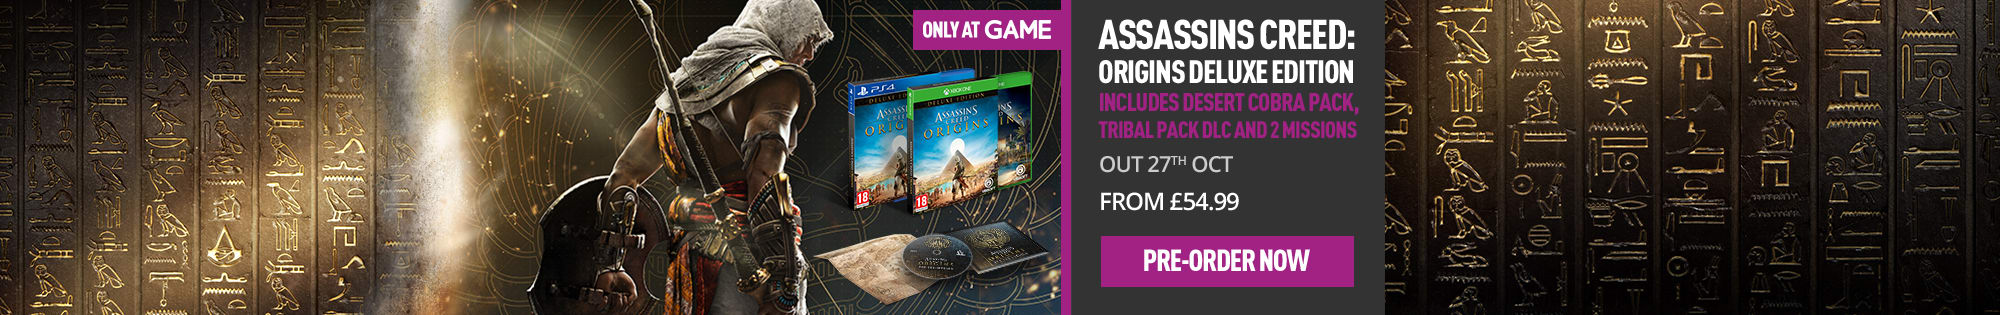 Assassins Creed Origins for PlayStation 4 and Xbox One - Homepage banner